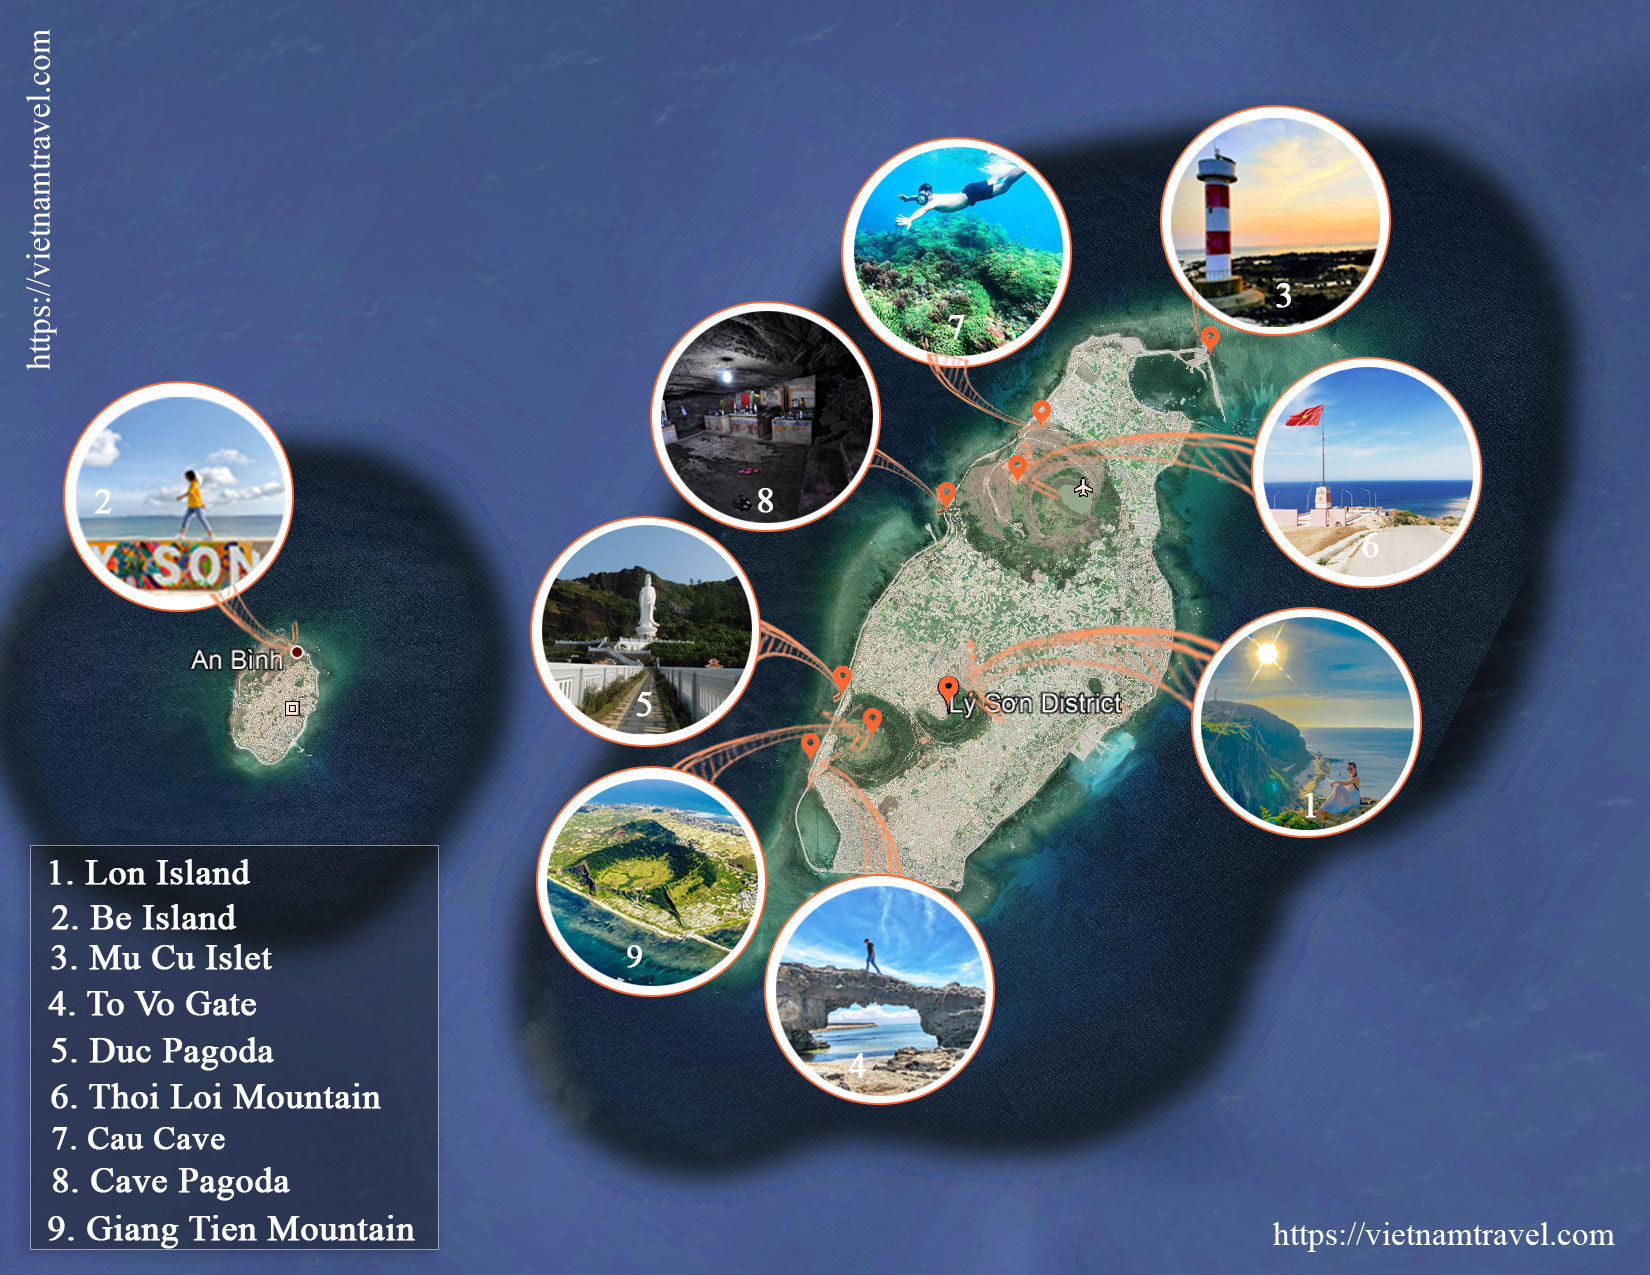 Ly Son Island Map: 9 must-see destinations in Ly Son, Quang Ngai